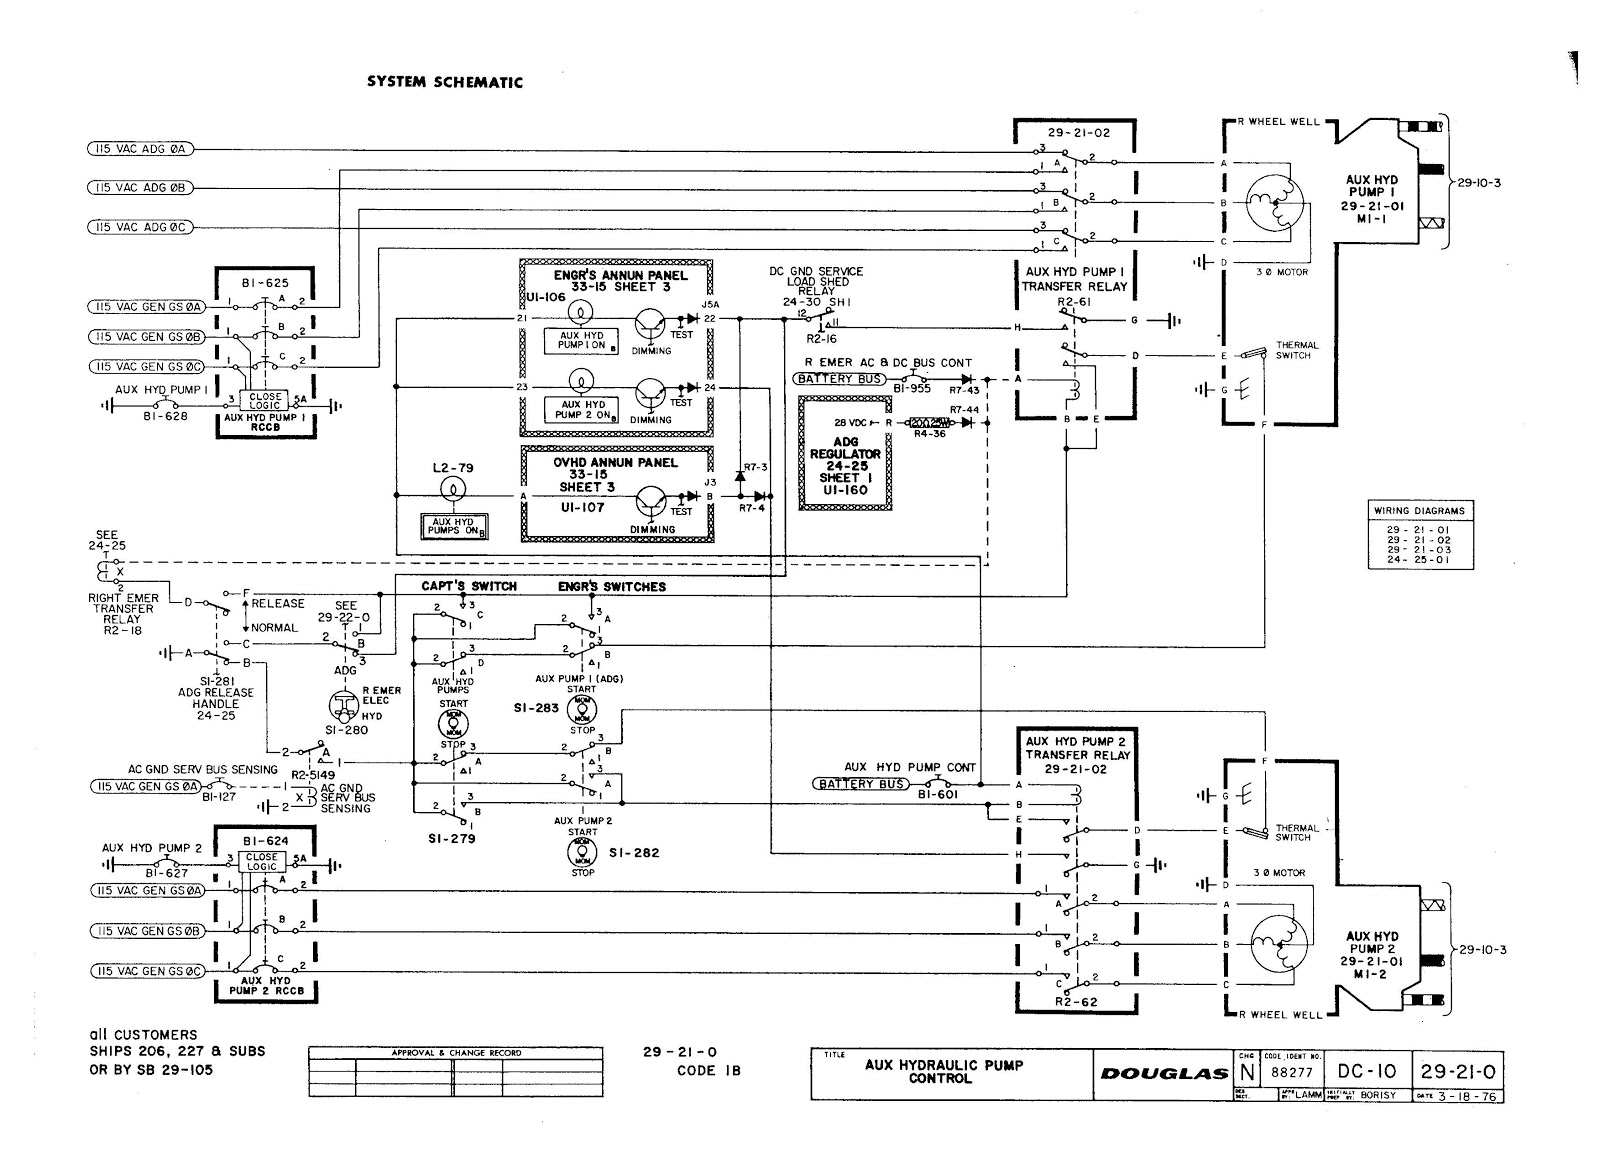 Part 66 virtual school aircraft wiring and schematic diagrams schematic diagram dc10 hydraulic system sciox Choice Image